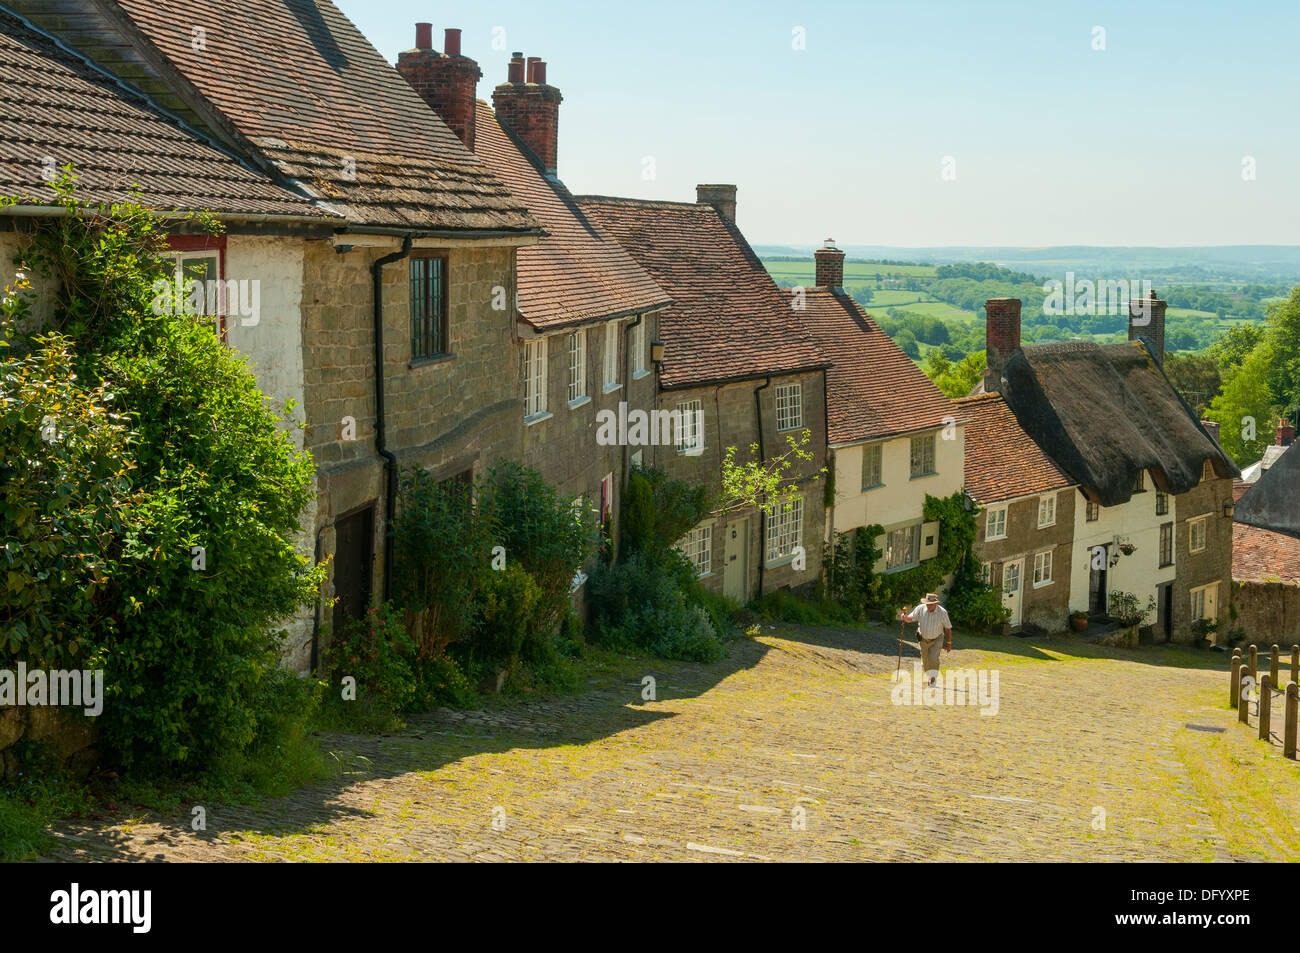 Park Walk at Shaftesbury, Dorset, England - Stock Image